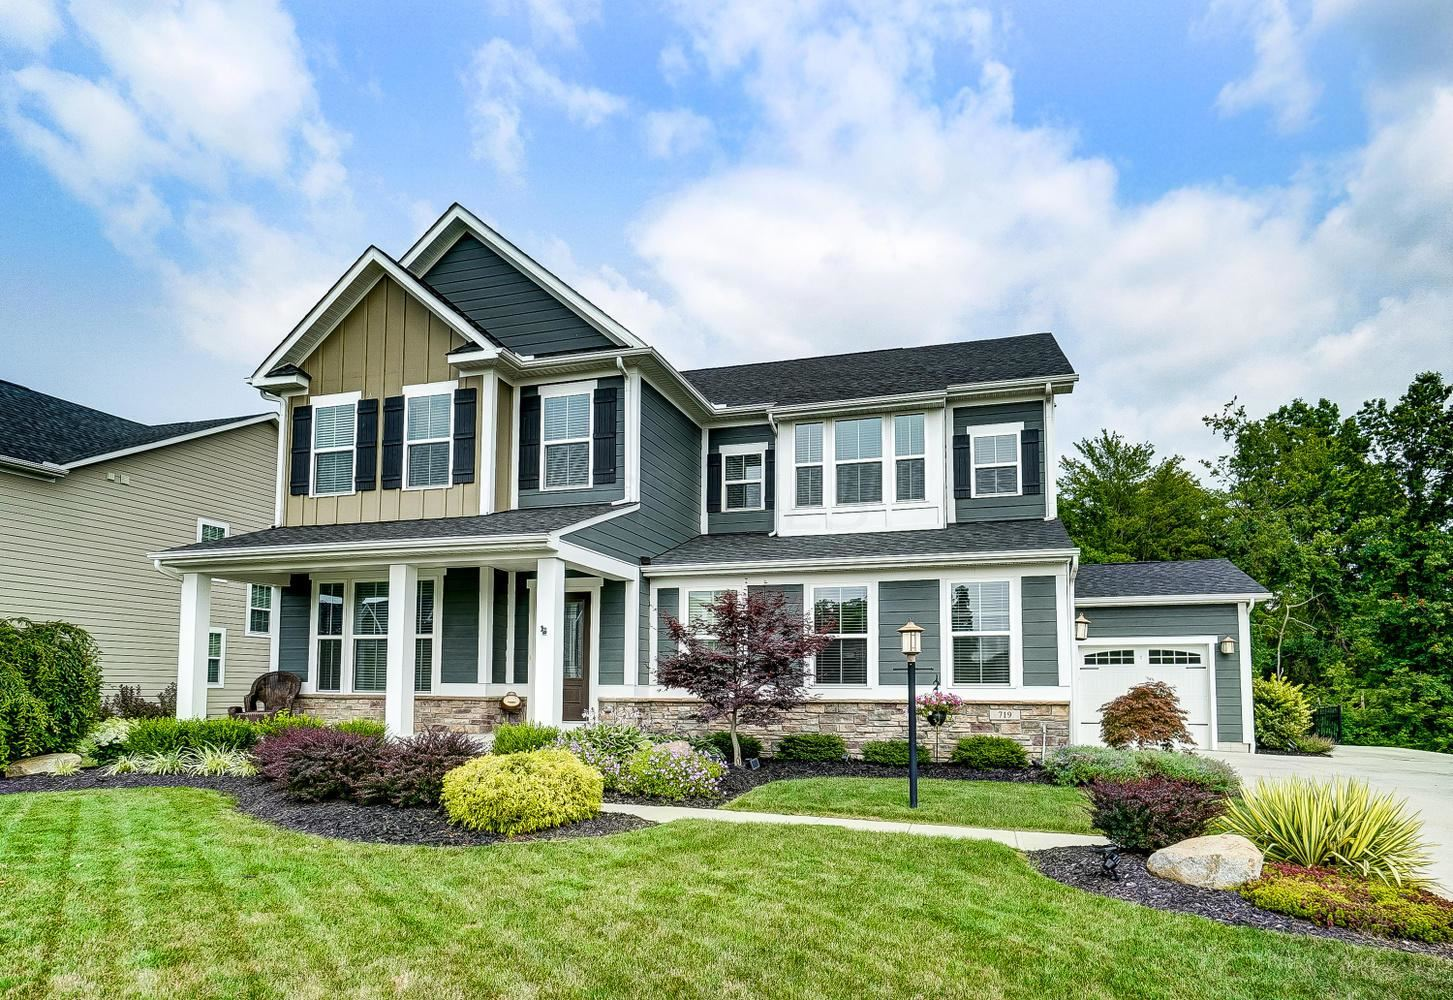 Photo of 719 Cliff View Drive, Galena, OH 43021 (MLS # 221027295)